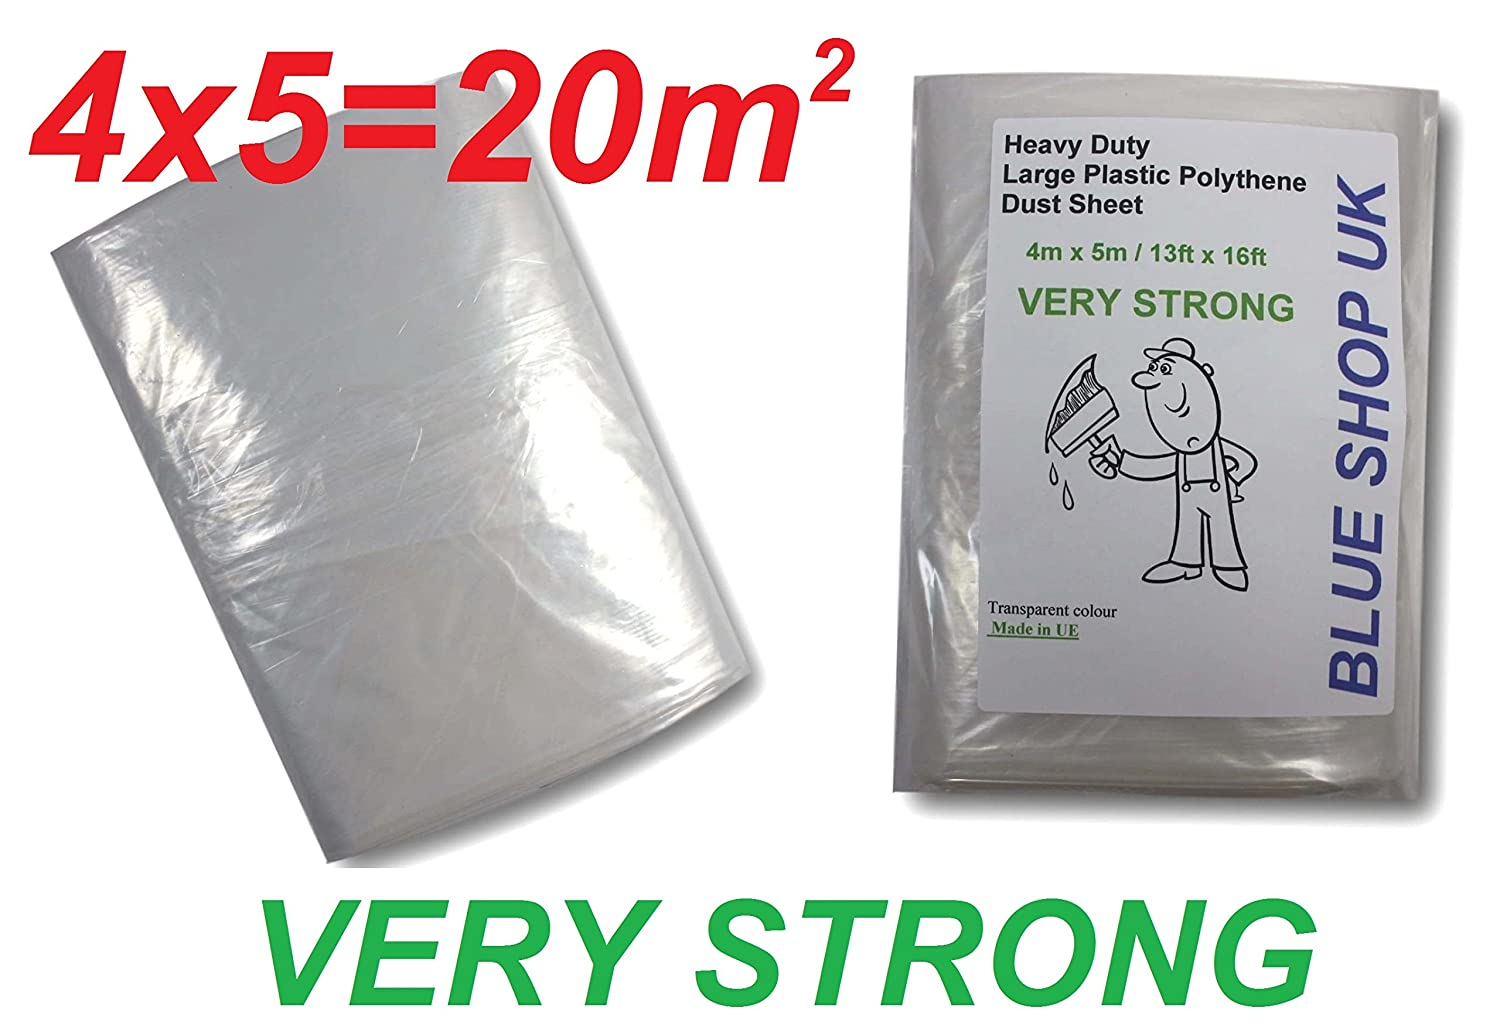 600g very strong 4m x 5m large plastic polythene dust sheet 13ft x 16ft painting masking floor windows odorless 1 x 600g very strong large polythene